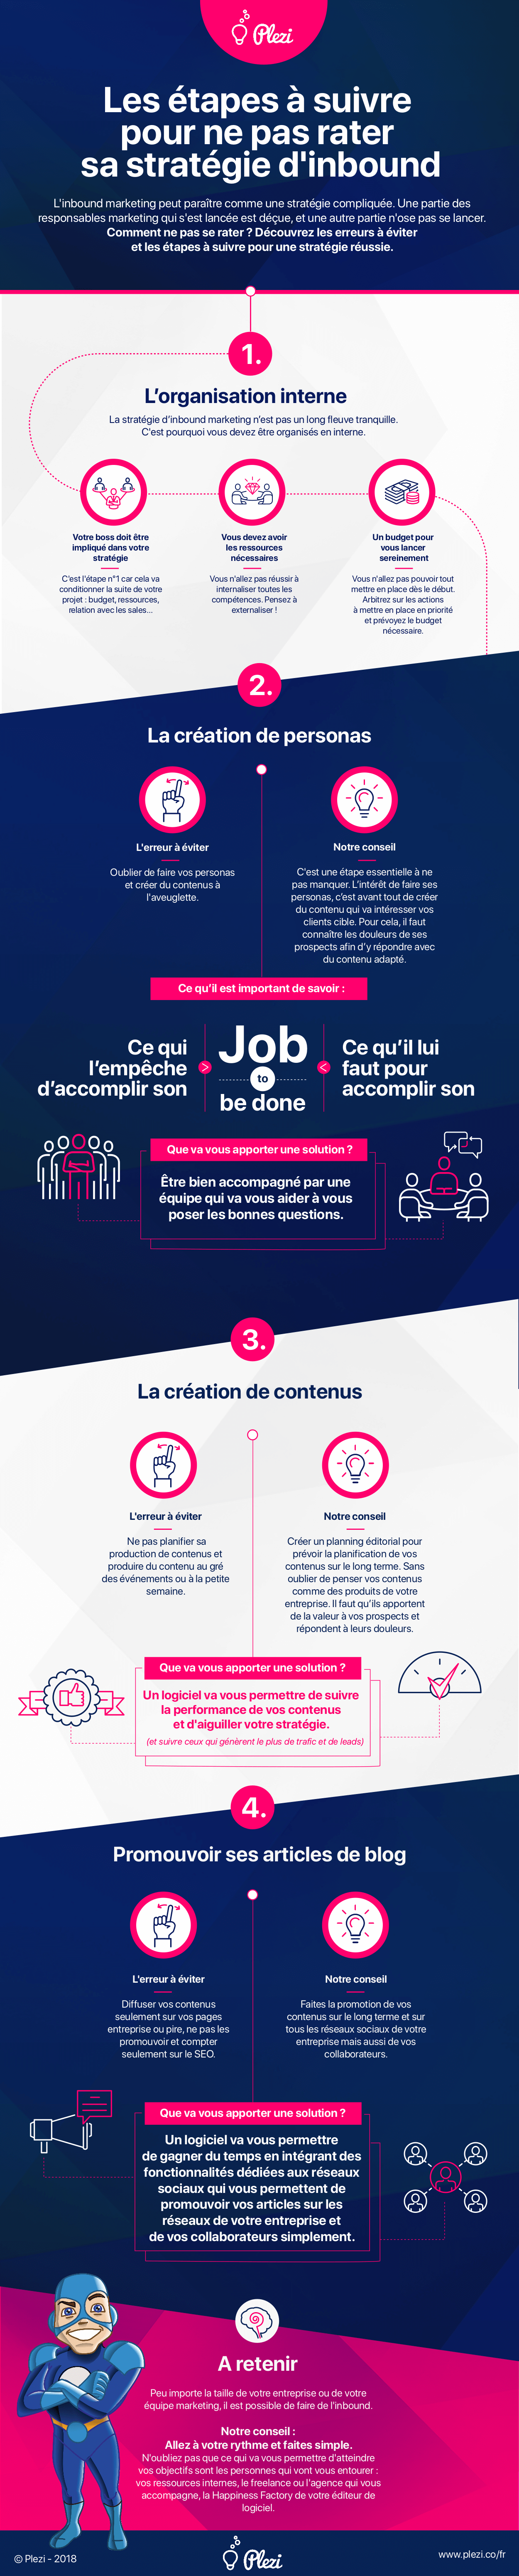 Infographie Plezi : les étapes de l'inbound marketing B2B